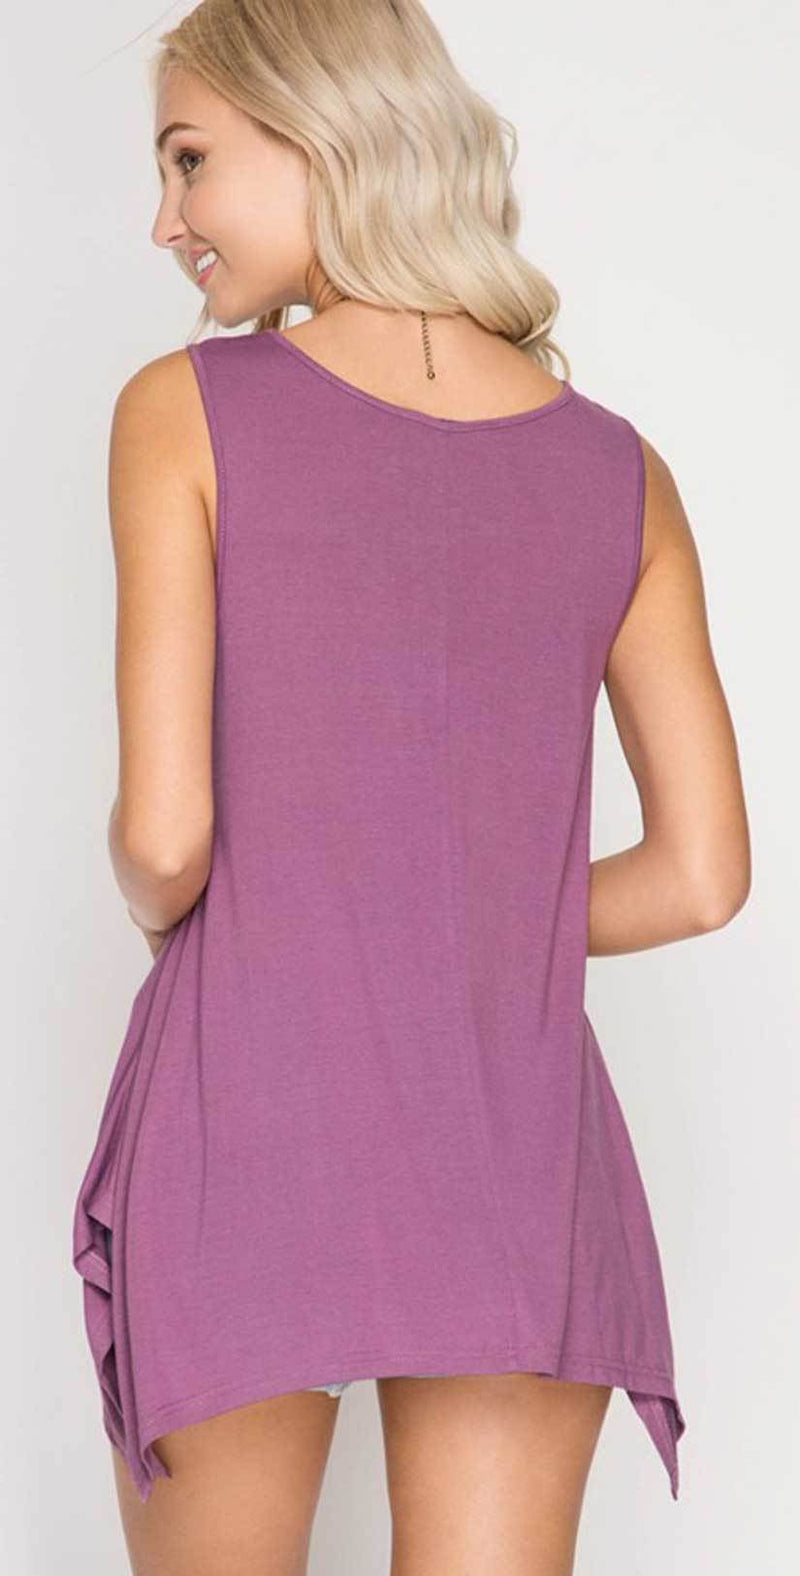 She + Sky Sleeveless Top with Braided Cutout Detail SL5262: